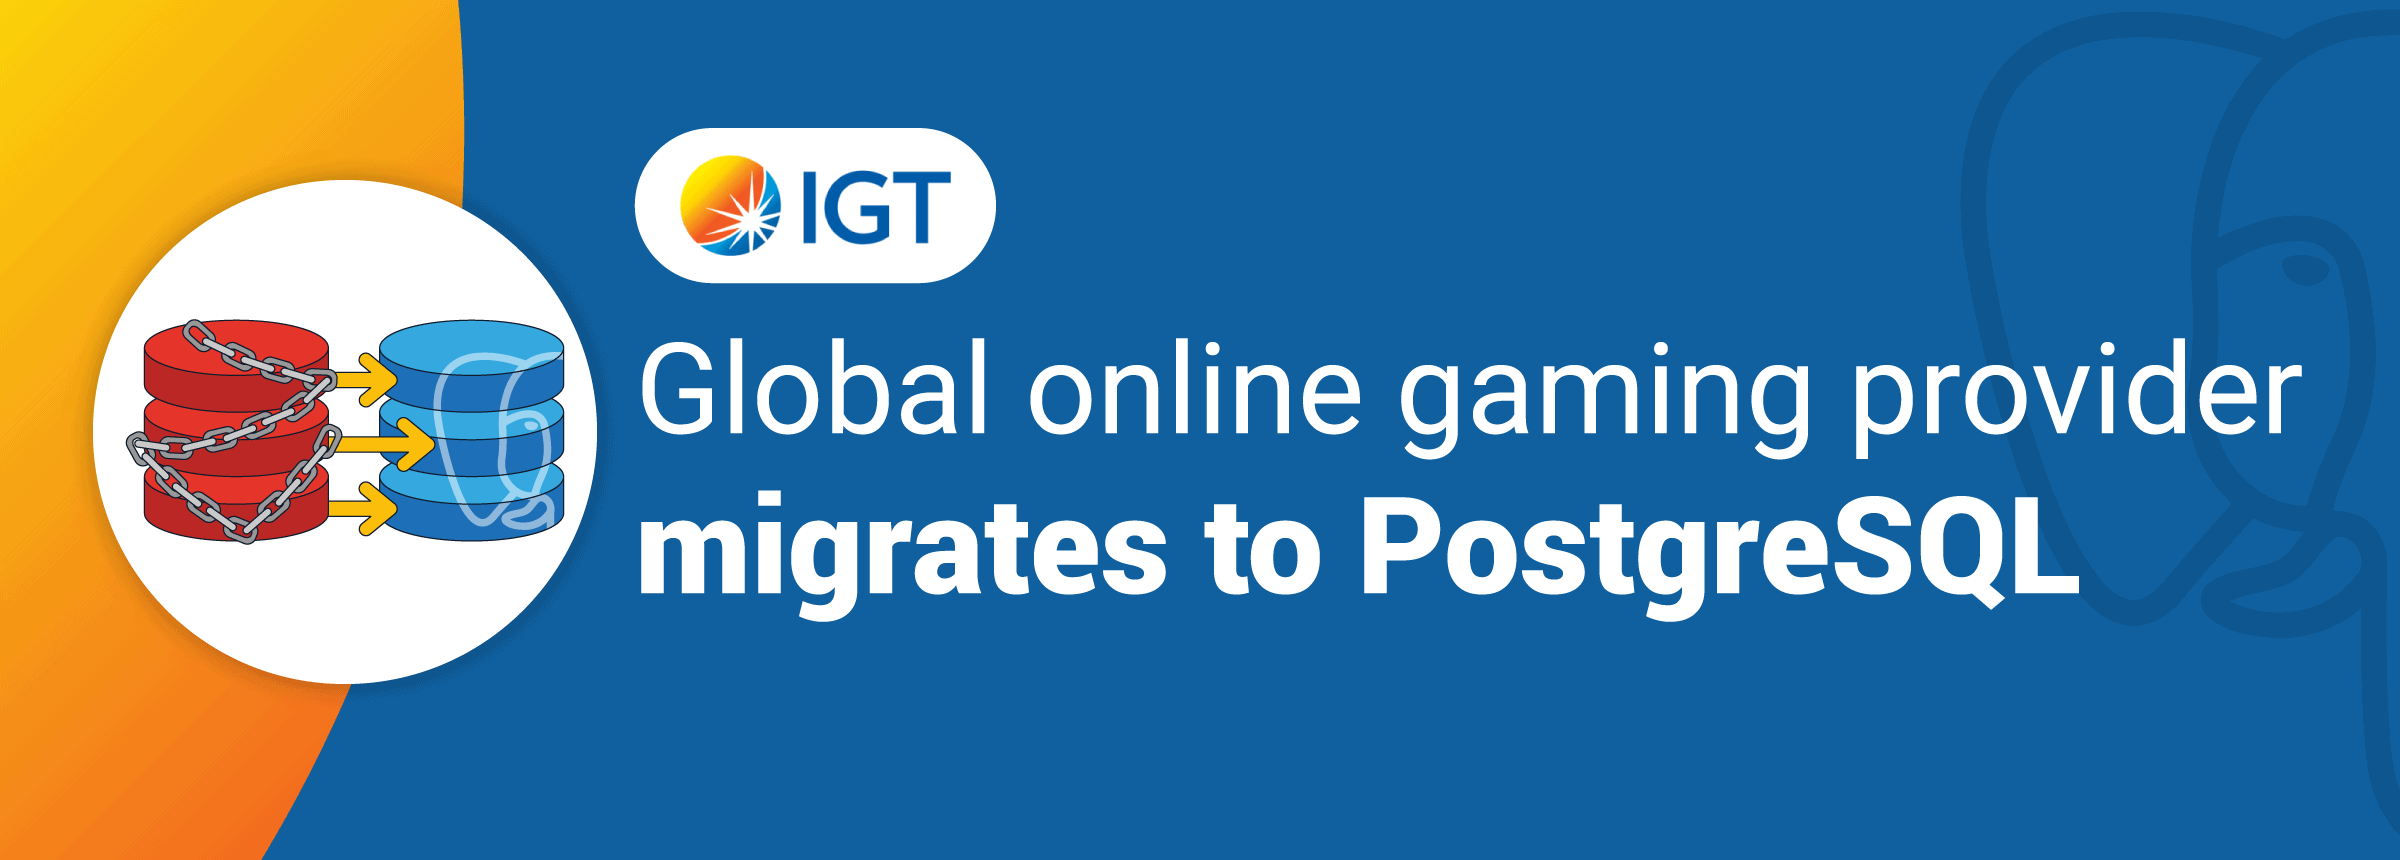 PostgreSQL Migration Case Study IGT